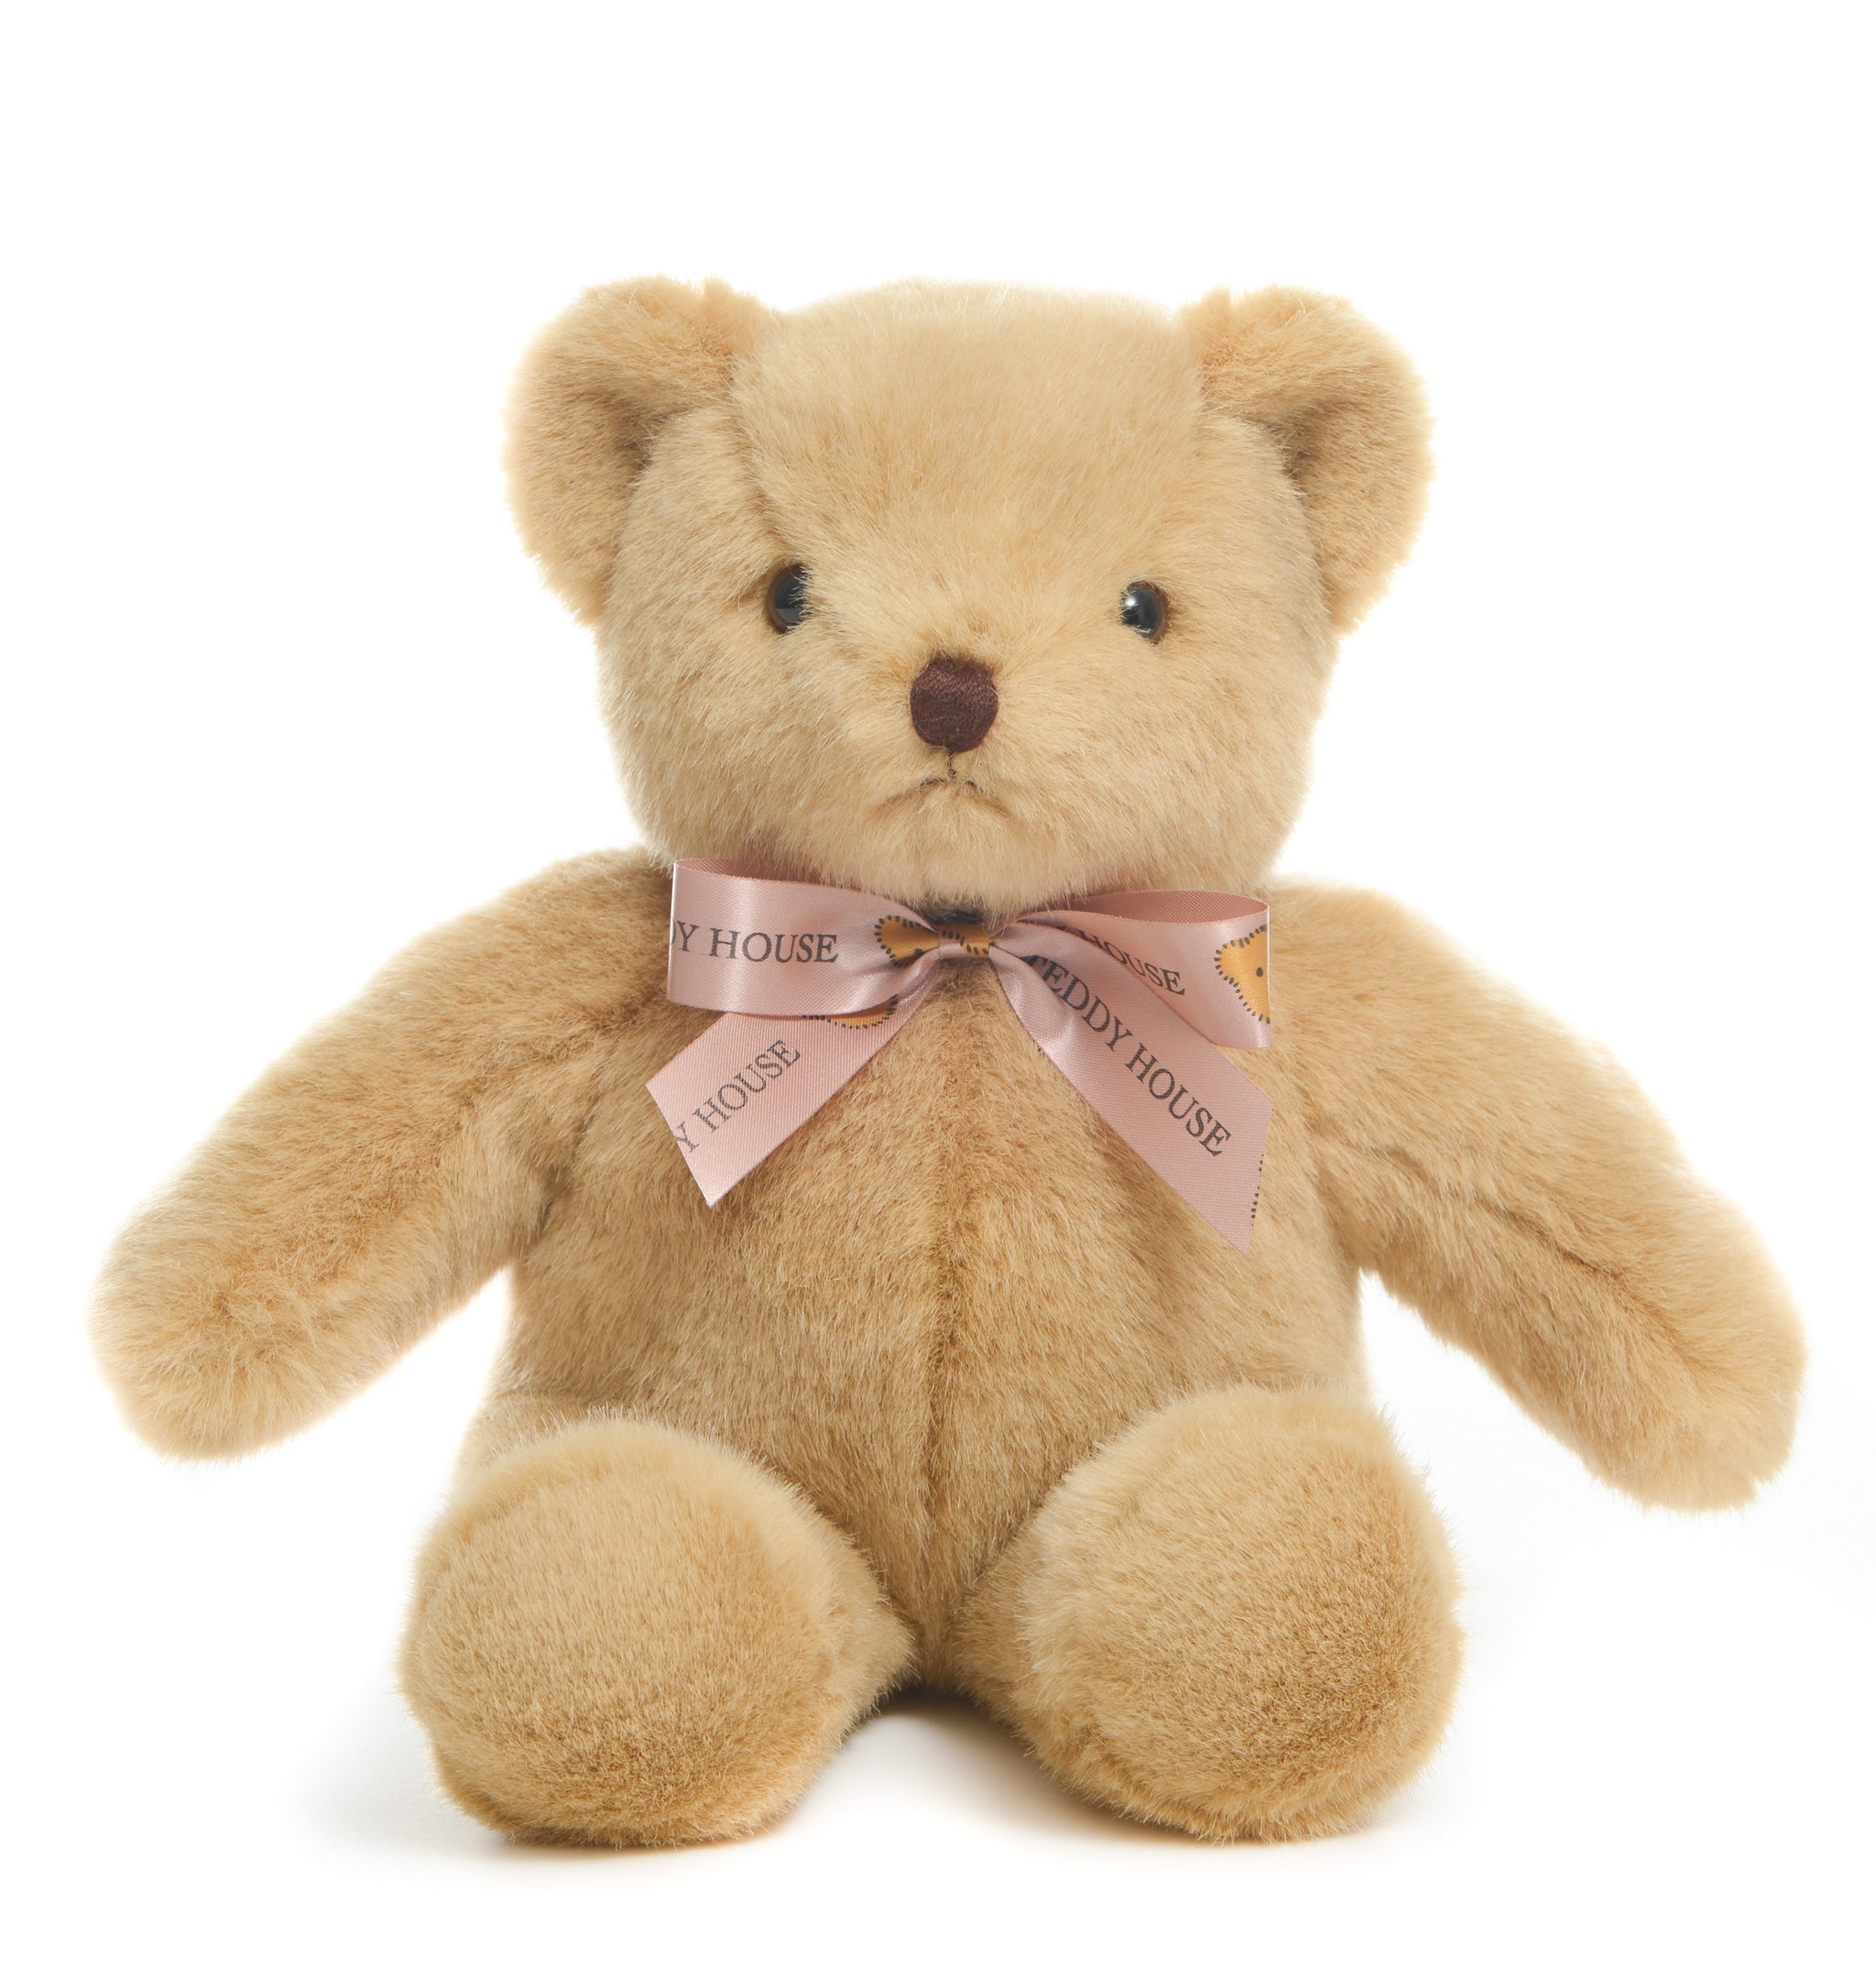 TEDDY HOUSE BONEKA TEDDY BEAR TAMBO BEAR 12 INCH